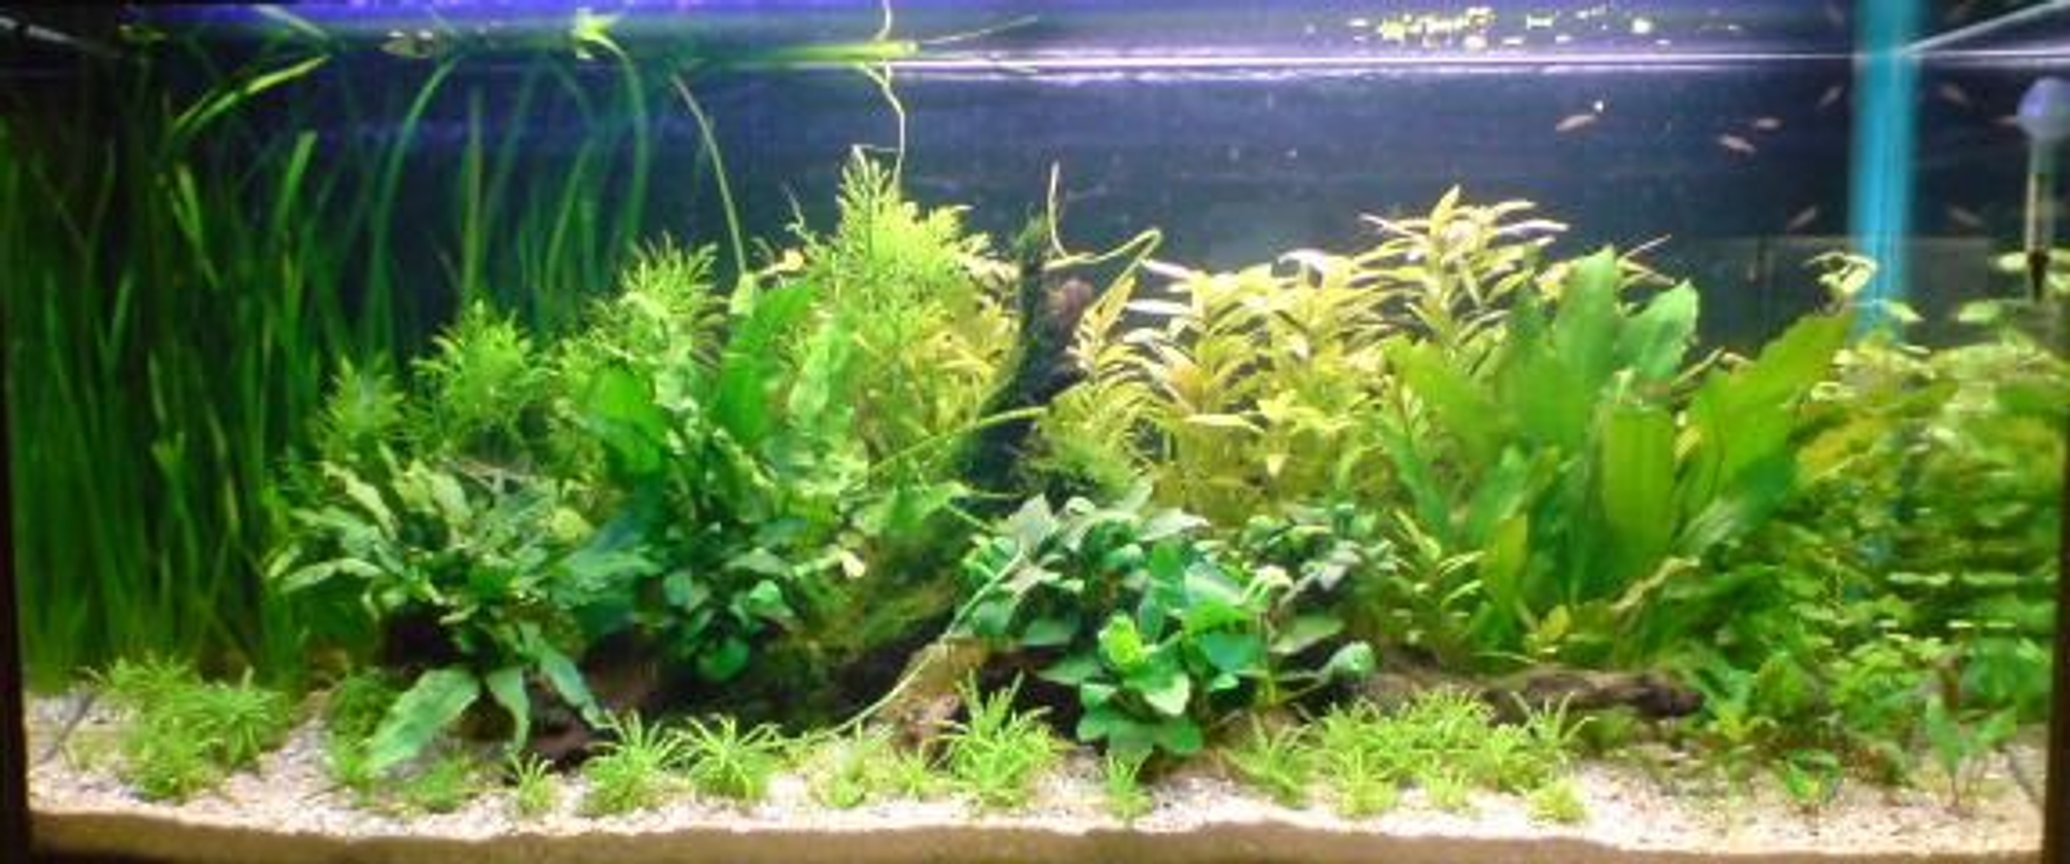 planted tank (mostly live plants and fish) - 250 litre plant tank. Recent scape.